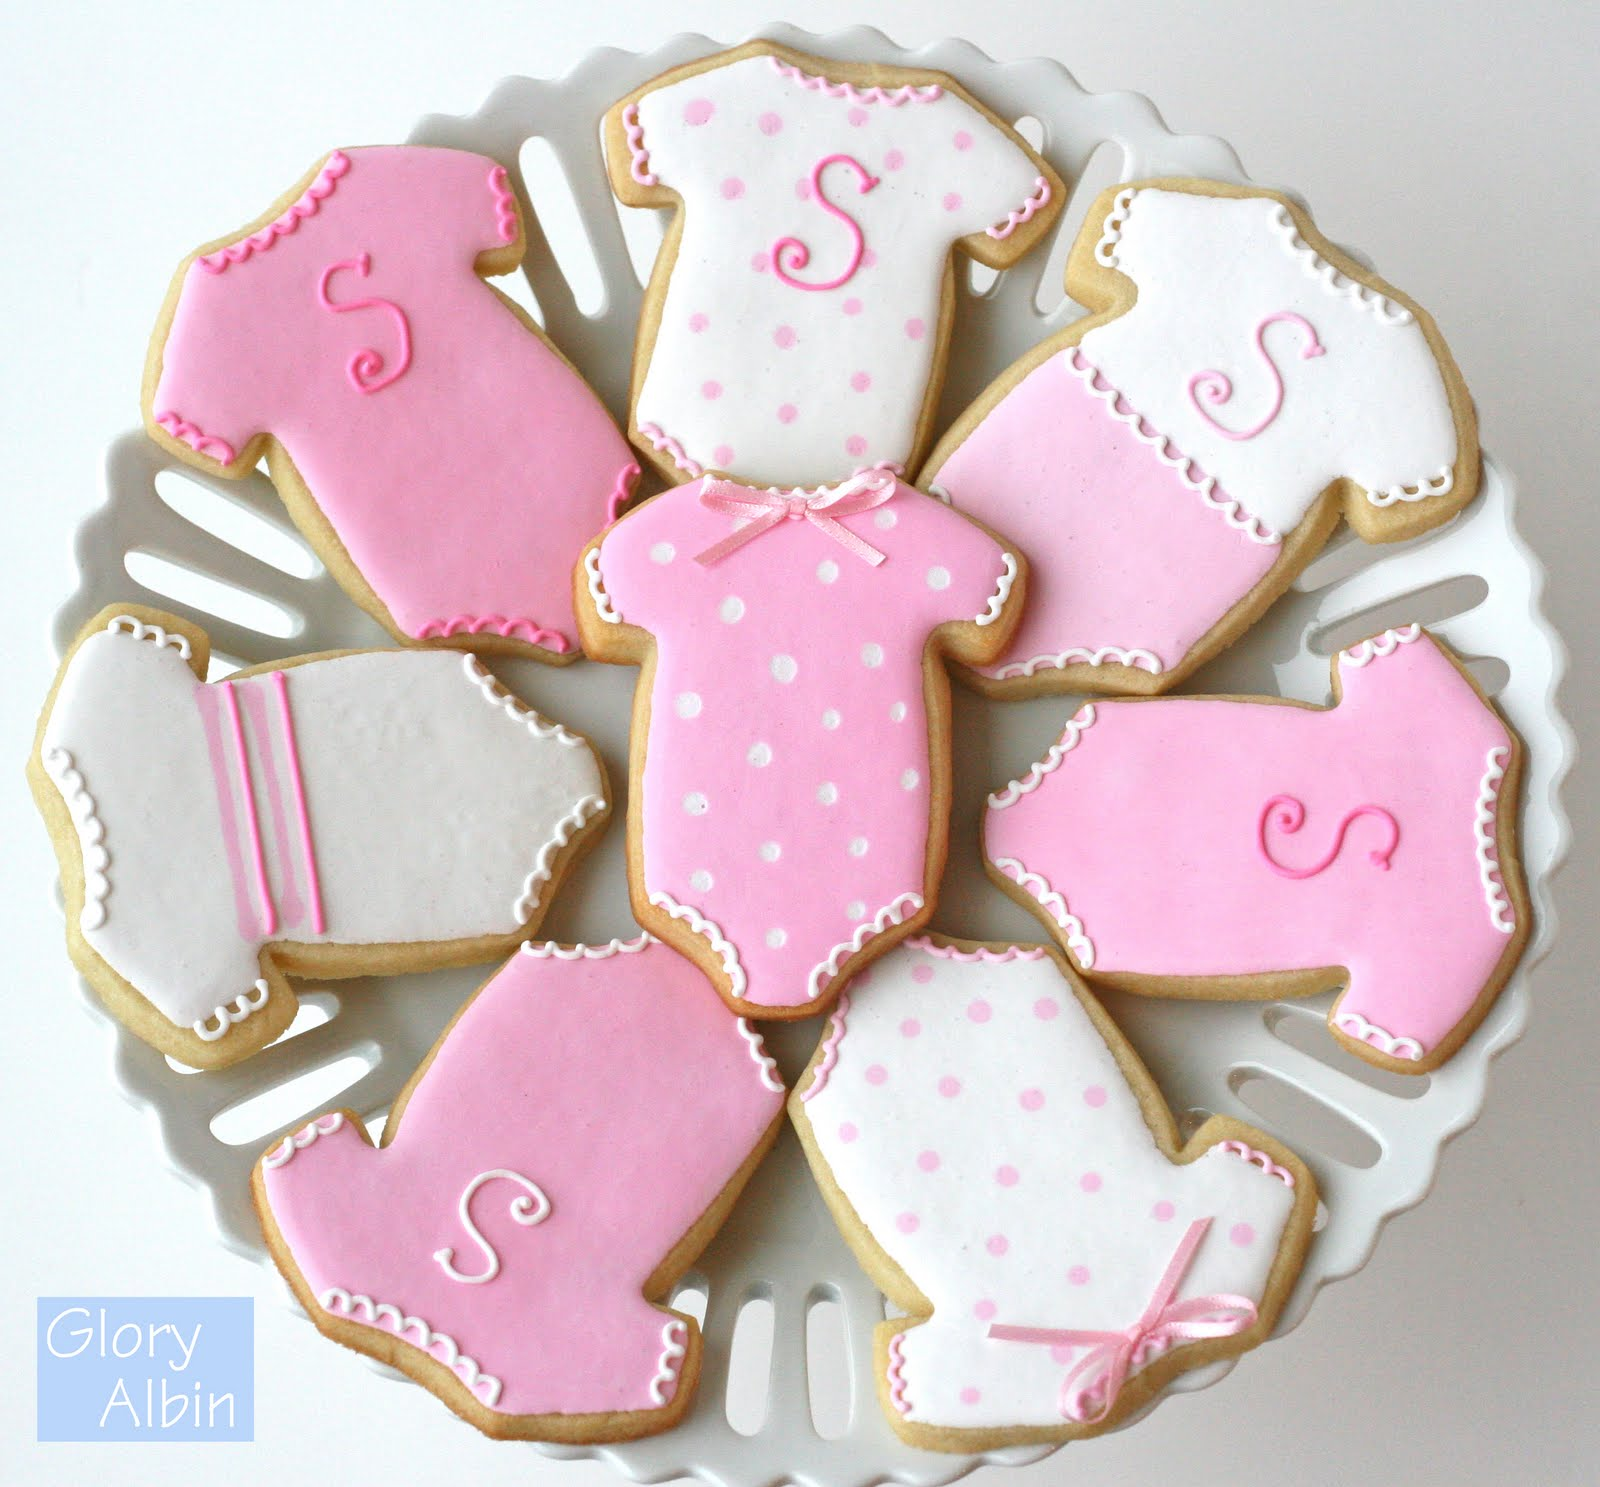 Decorating Sugar Cookies with Royal Icing – Glorious Treats